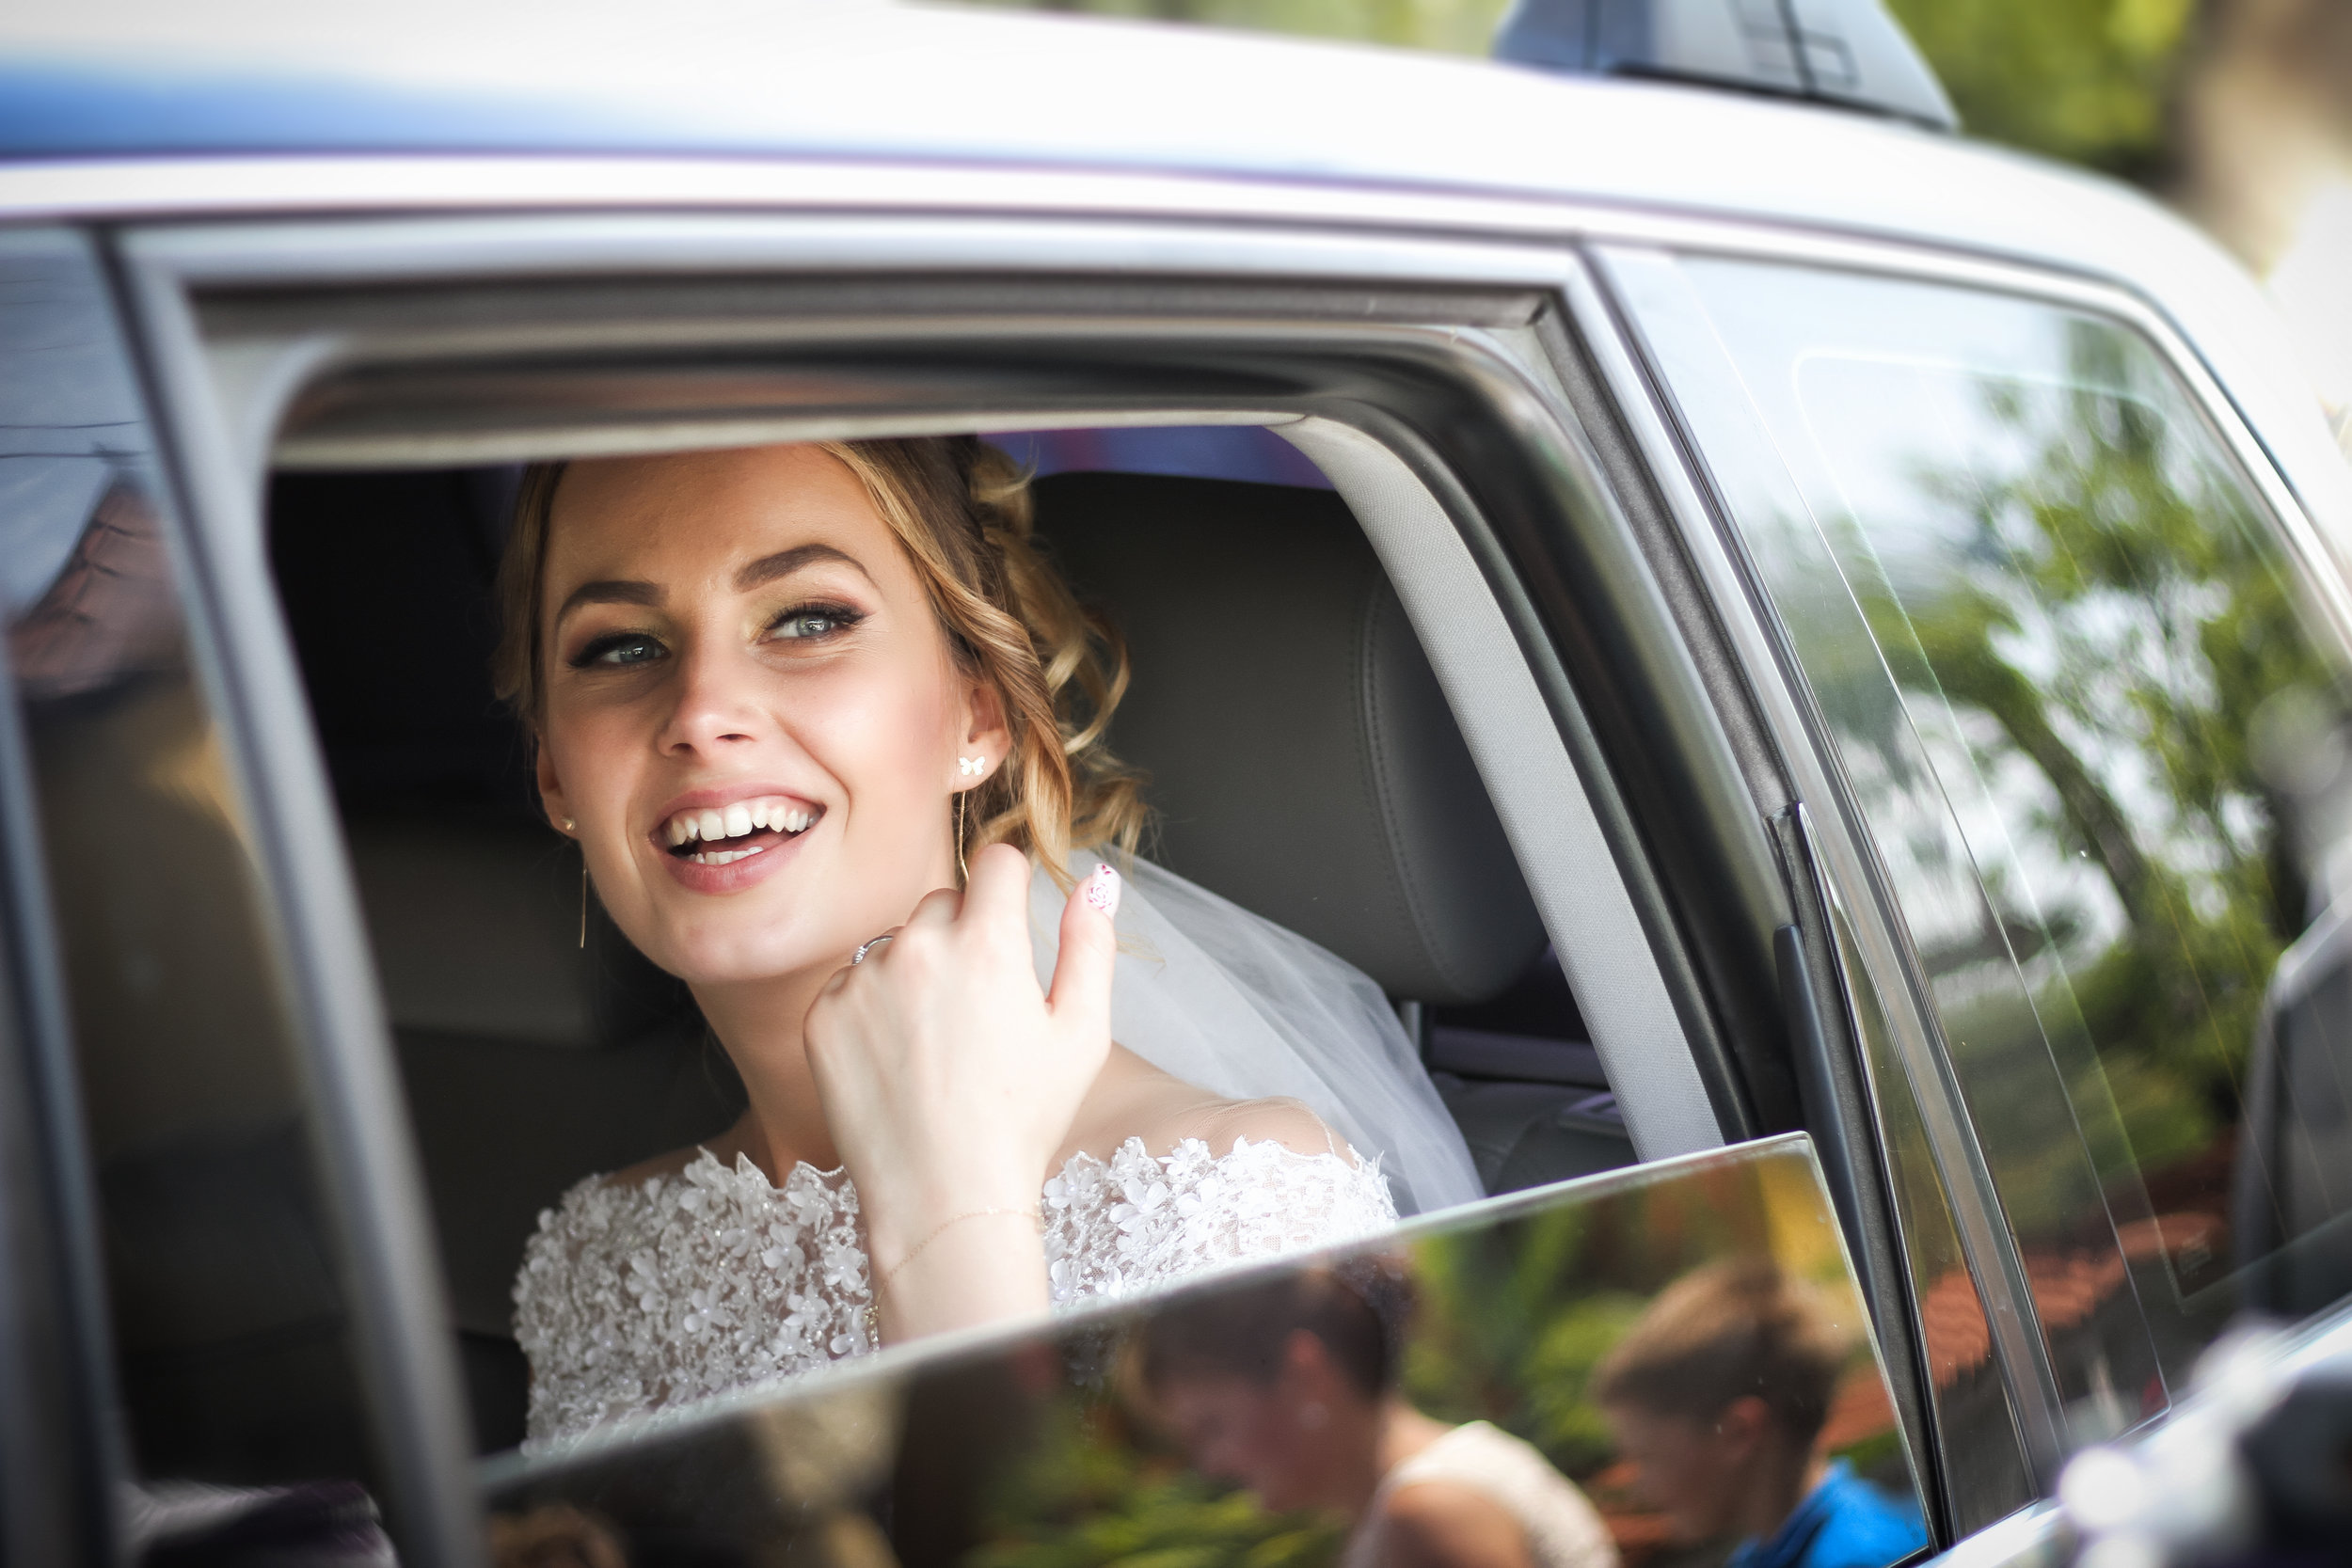 How Will You Arrive On Your Wedding Day? - Rest easy knowing that your Transportation is taken care of. Enjoy Luxury Limousine Service to each of your wedding locations.